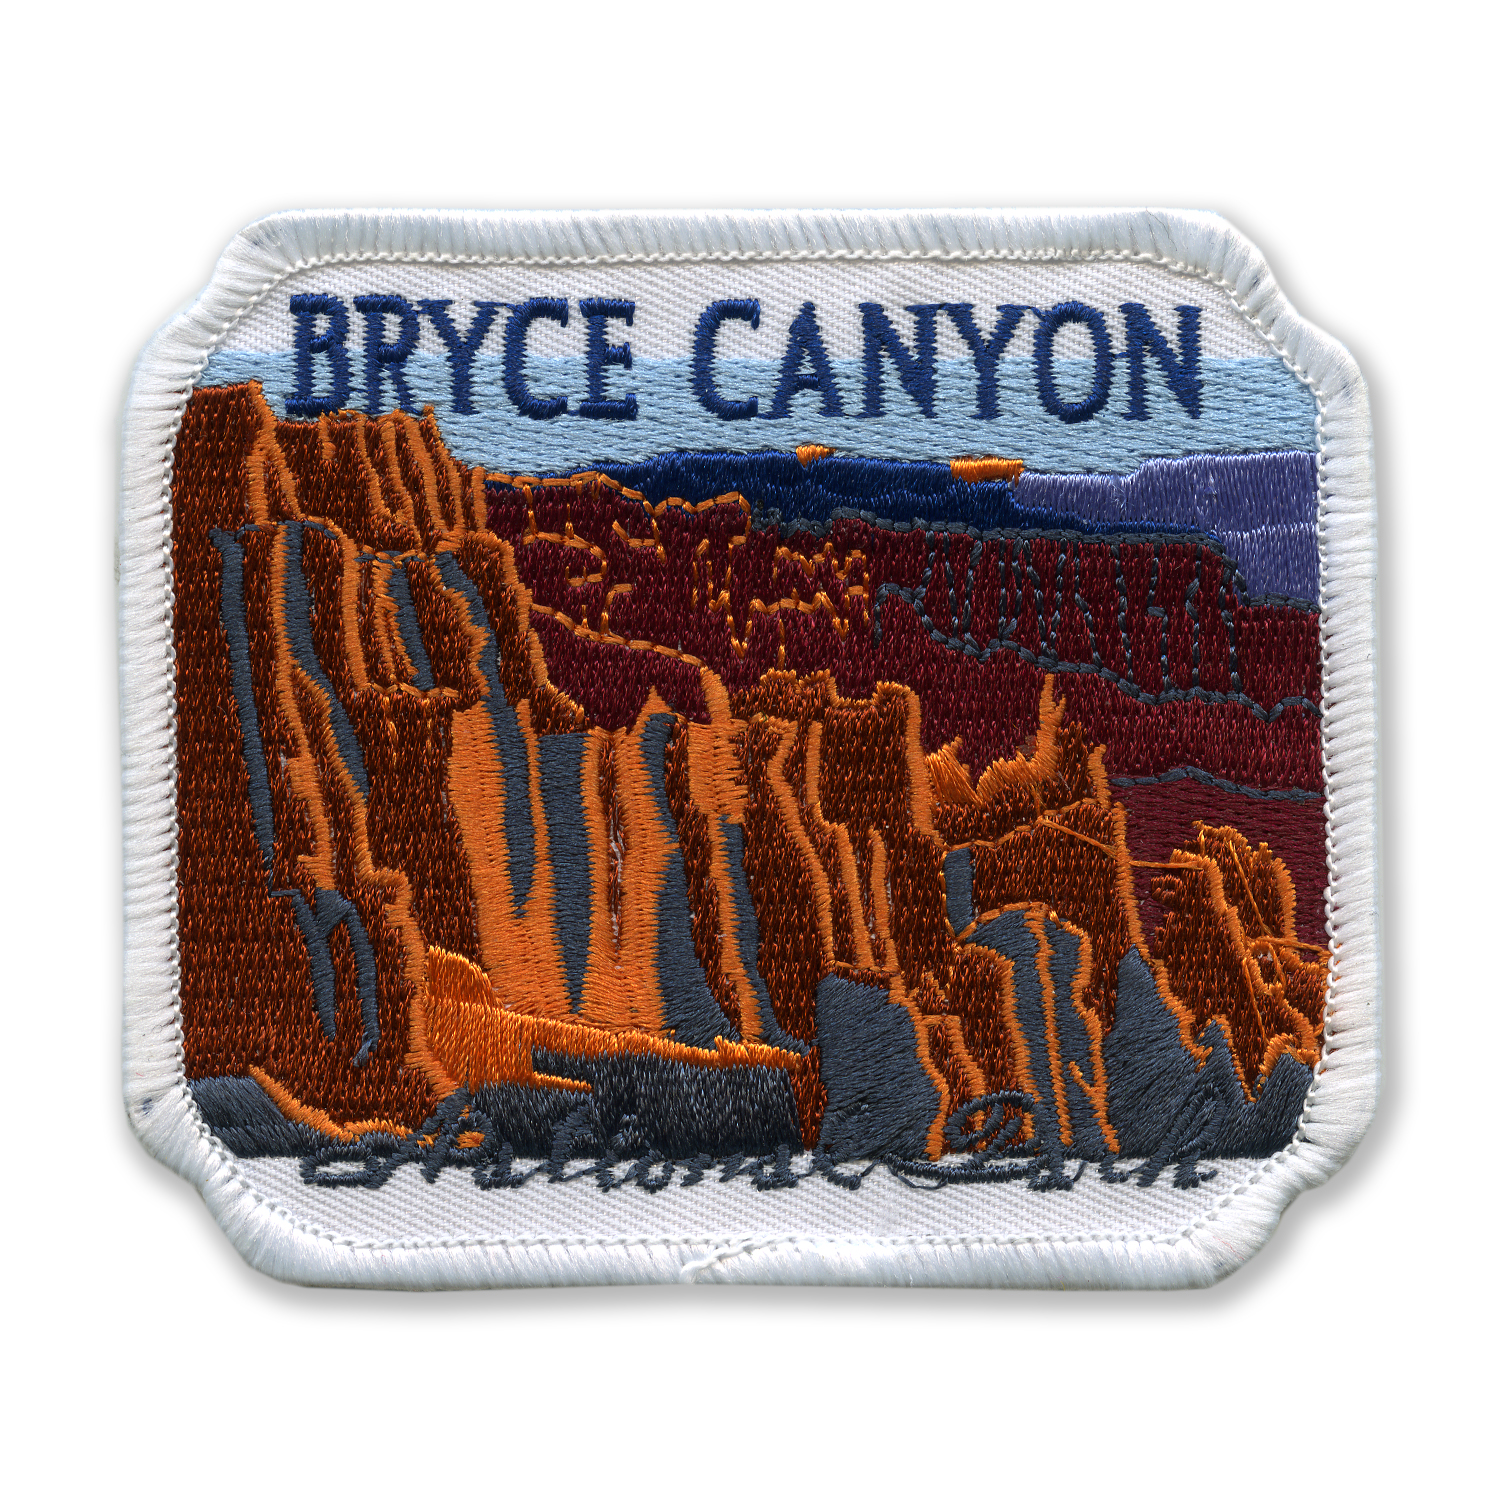 nps_patch_project_bryce_canyon_national_park_4.jpg